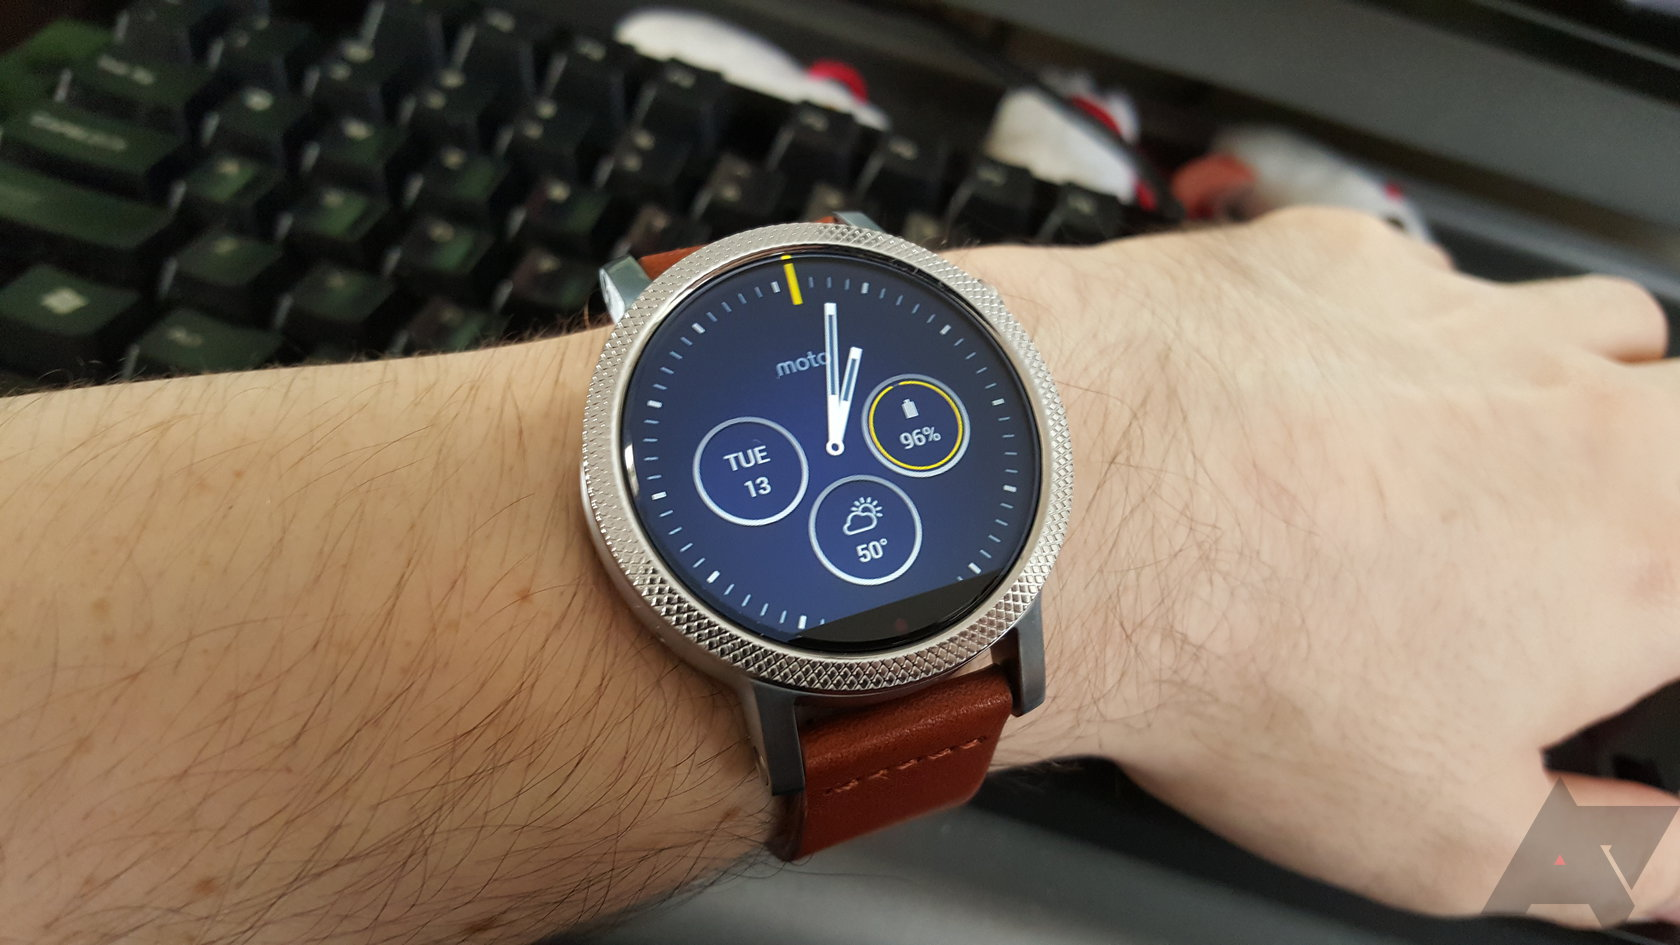 huawei watch vs moto 360. on the other side, motorola\u0027s watch faces are more thoughtful and feature-packed. you can change what complications show, pick different themes huawei vs moto 360 a